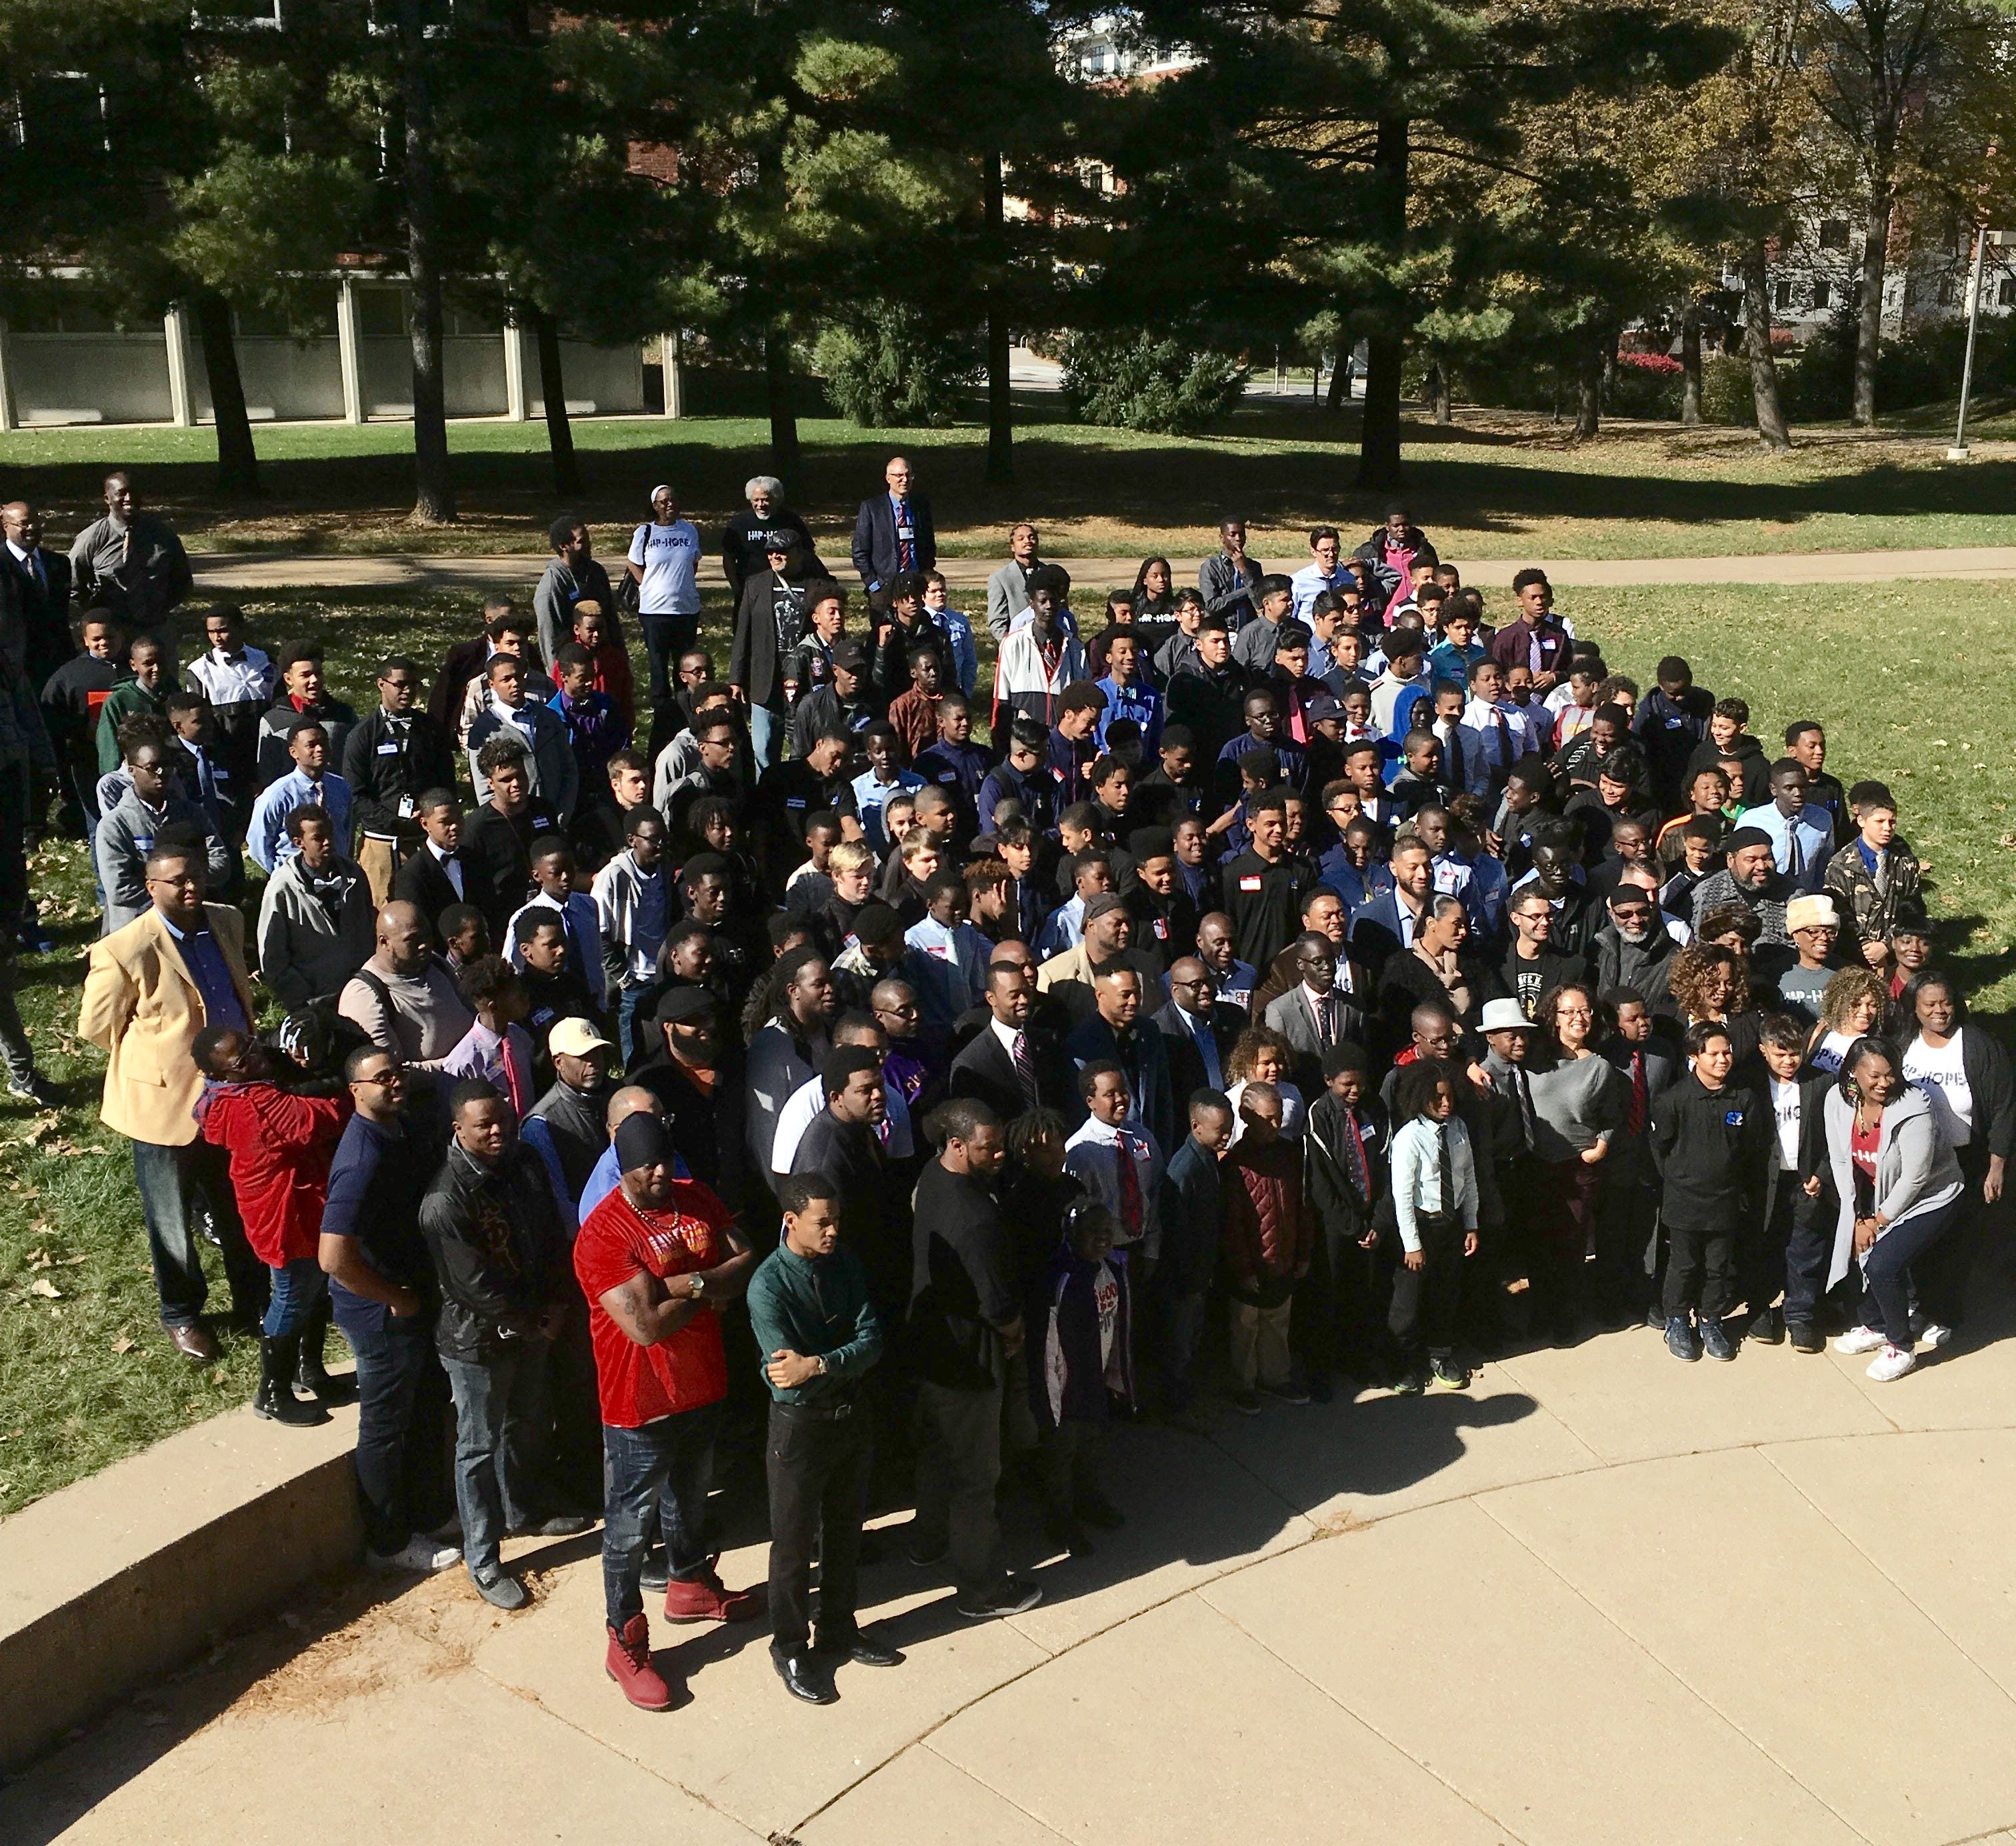 Among the over one hundred people who attended the Greater Des Moines Conference for Young Men of Color were members of the Brother 2 Brother program, other young men from the Des Moines area and even from Moline, Illinois.